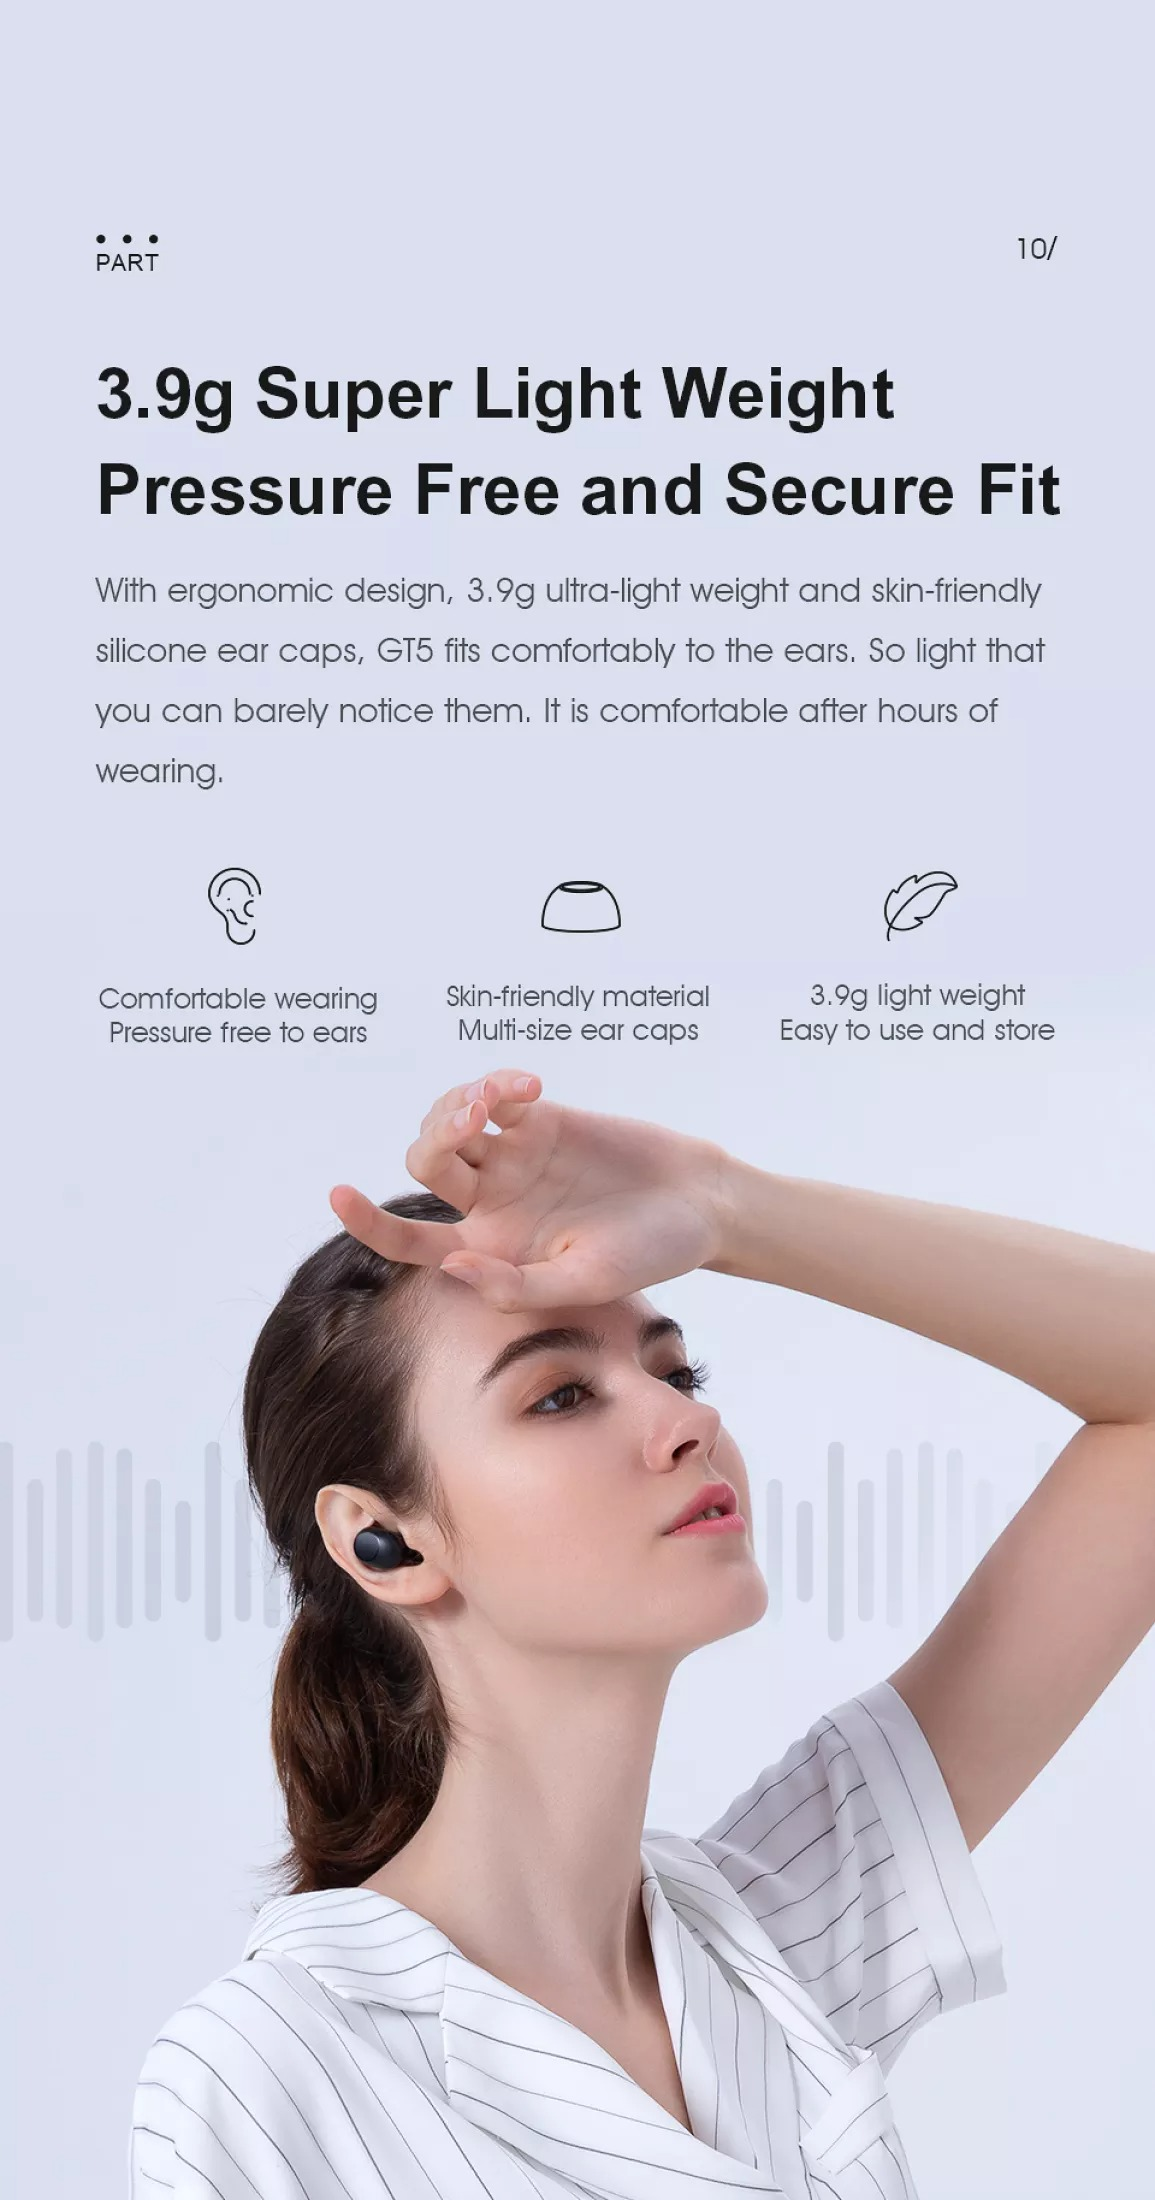 Tai nghe Bluetooth Haylou GT5 12